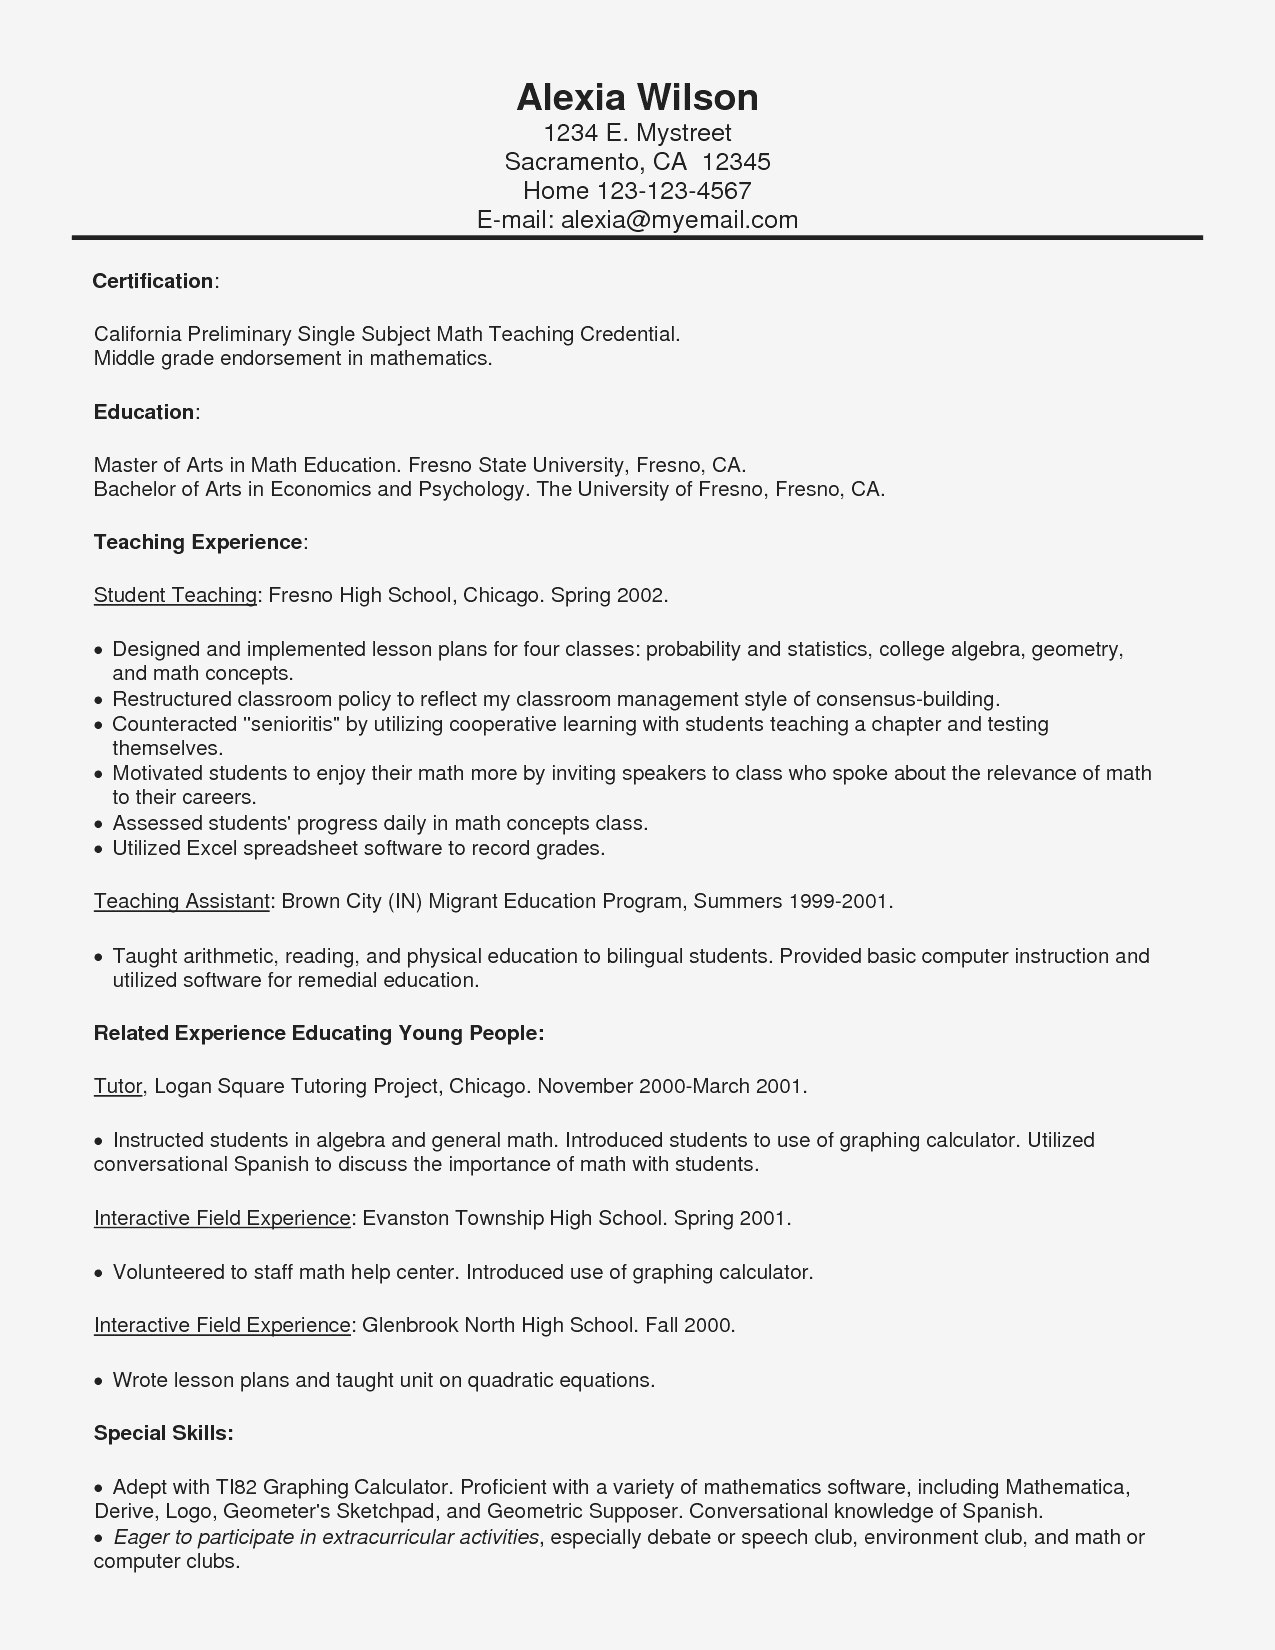 psychology resume template example-Resume 14-e